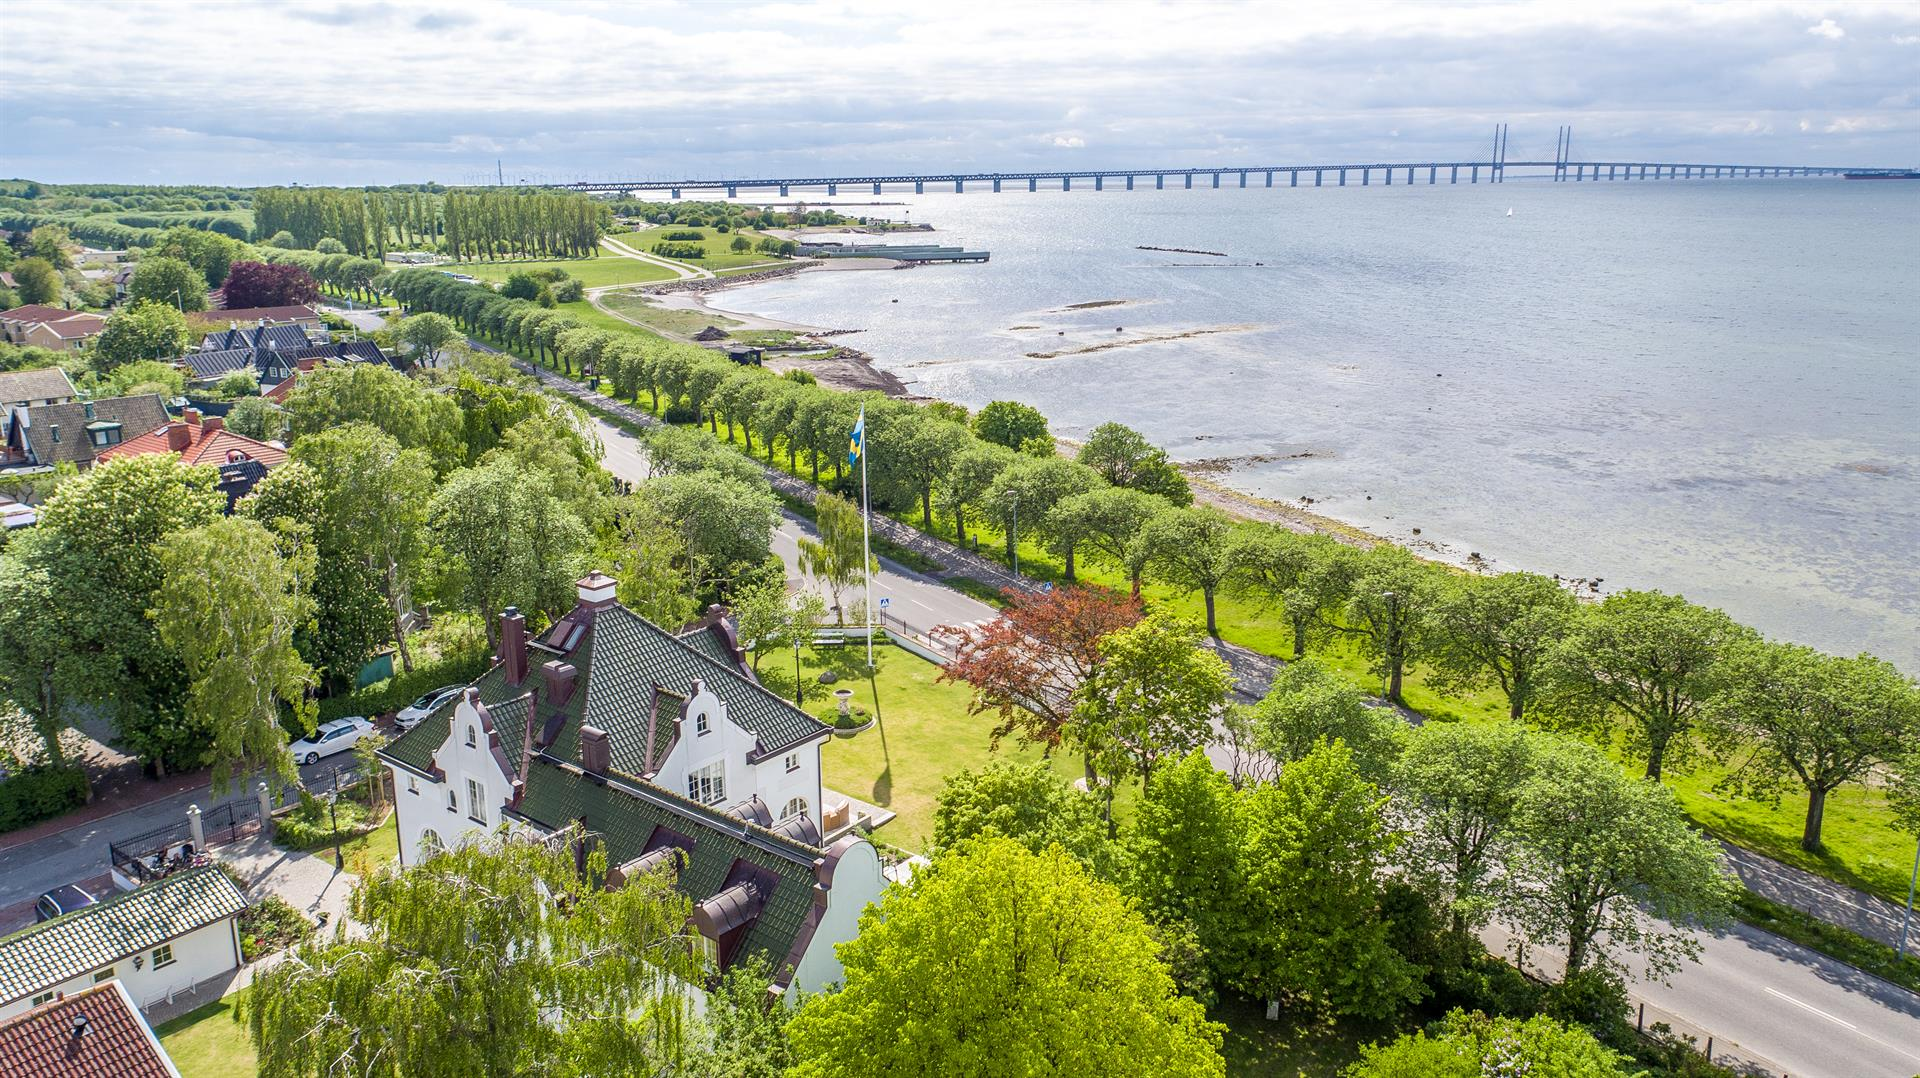 Villas / Townhouses for Sale at Villa Strand Skane, Sweden